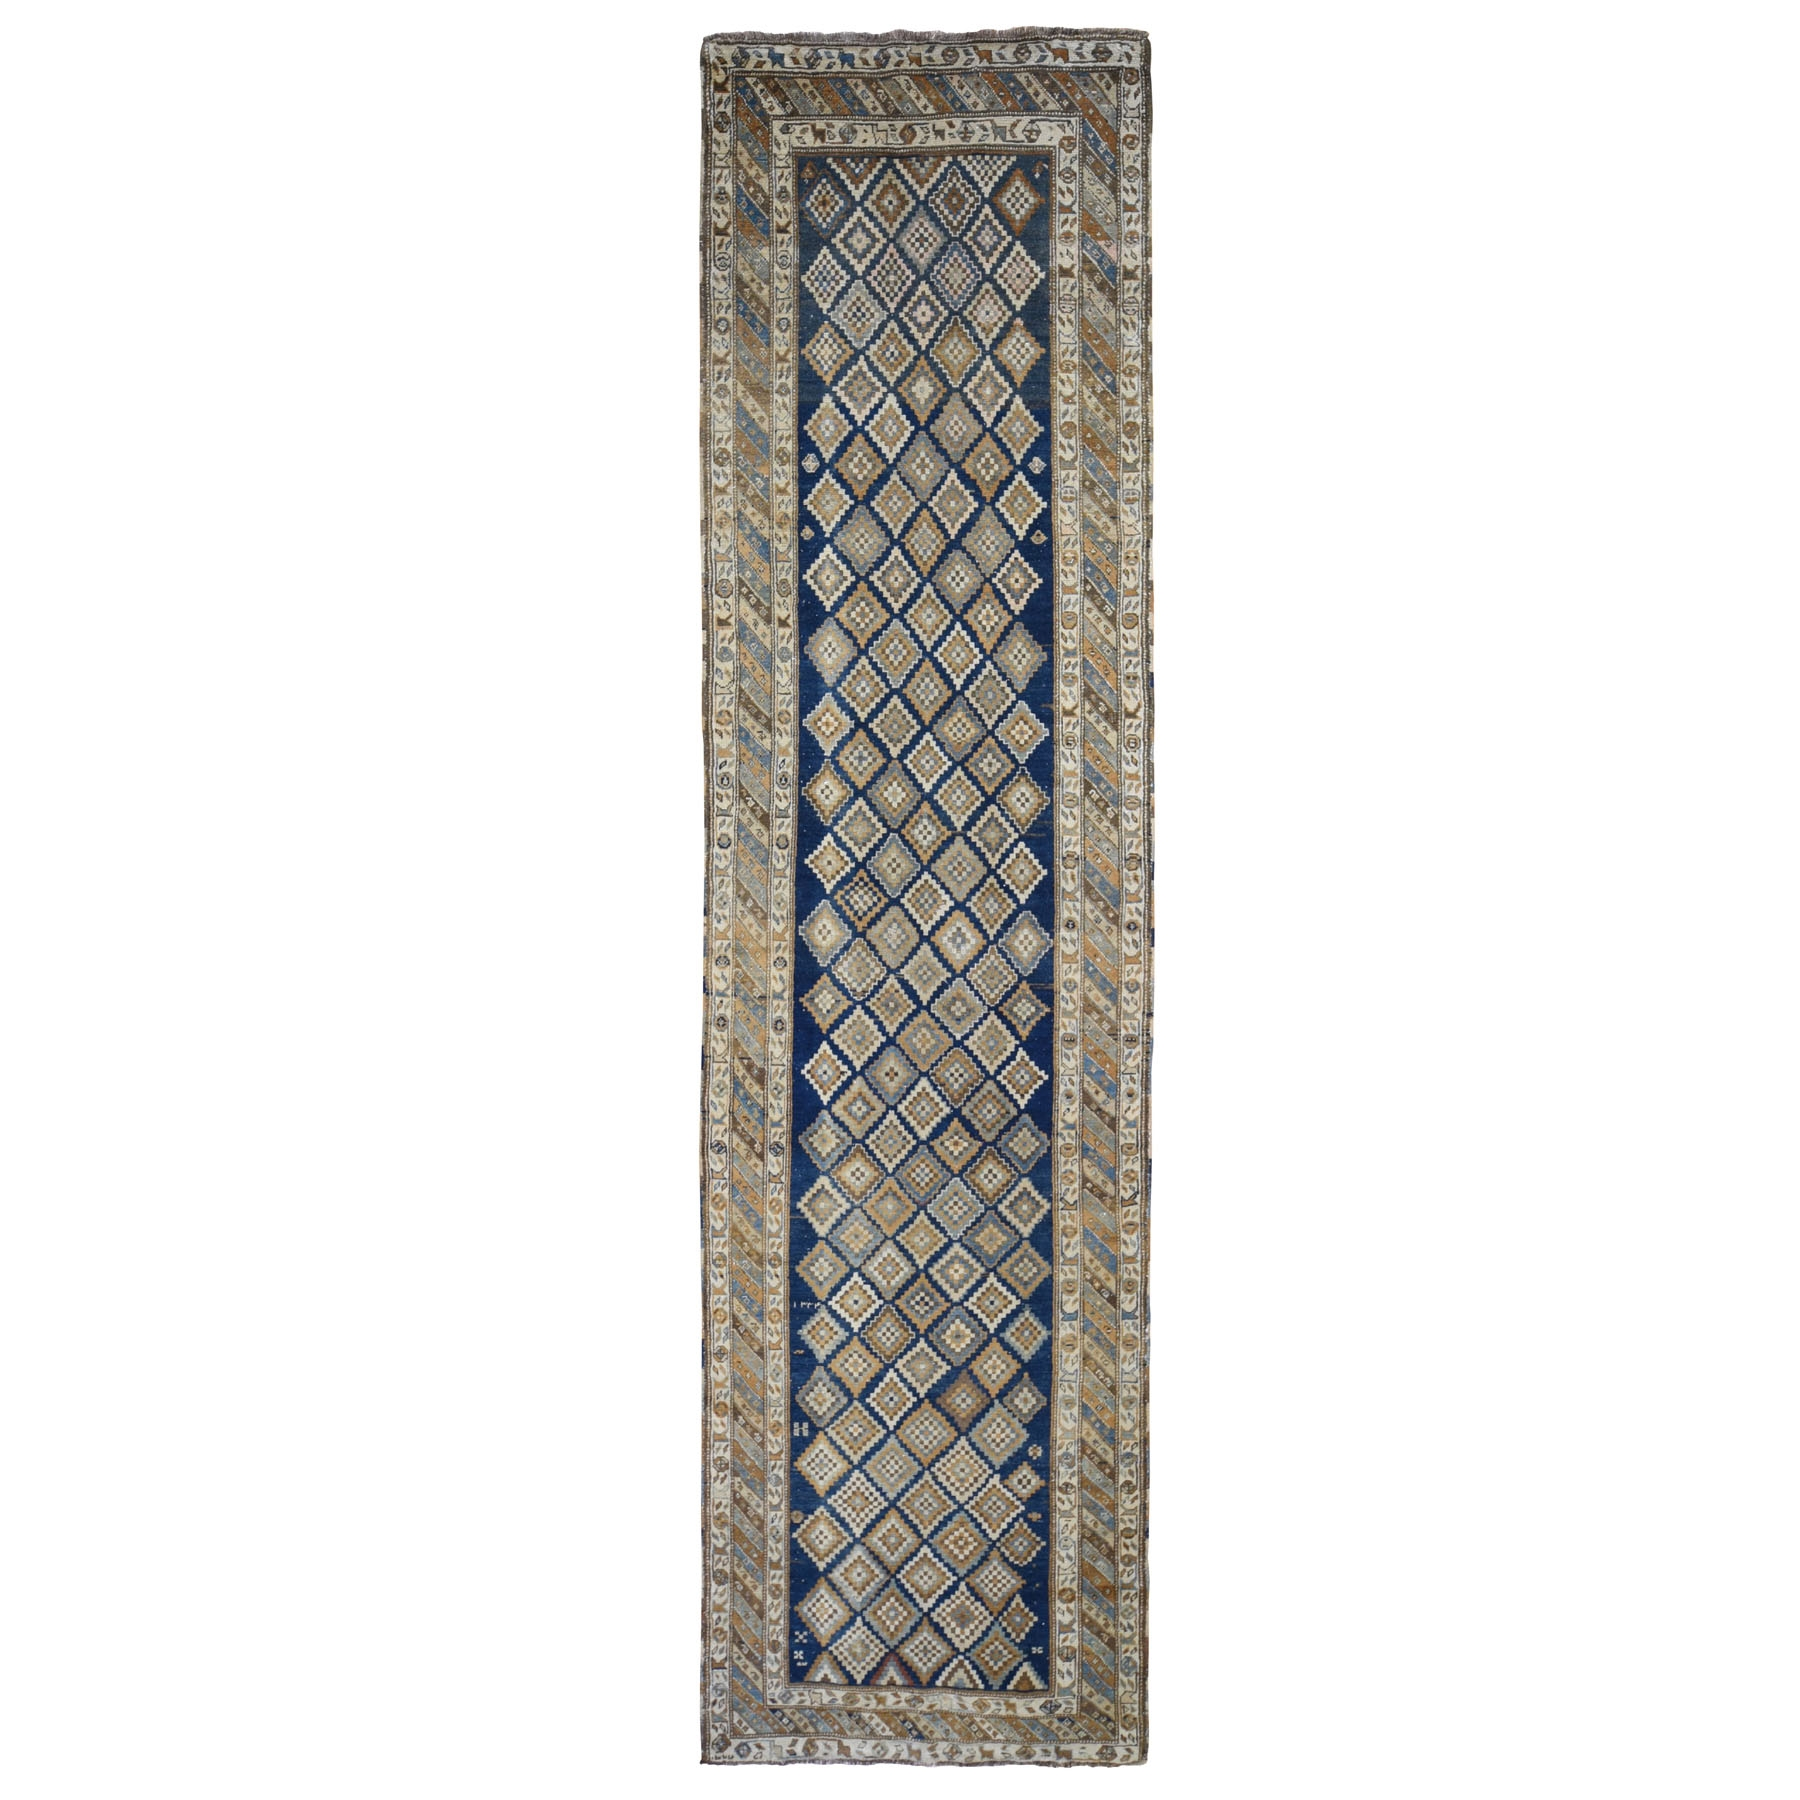 "3'4""x13'2"" Blue Antique Caucasian Wide Runner All Over Square Design Hand Woven Fine Oriental Rug"